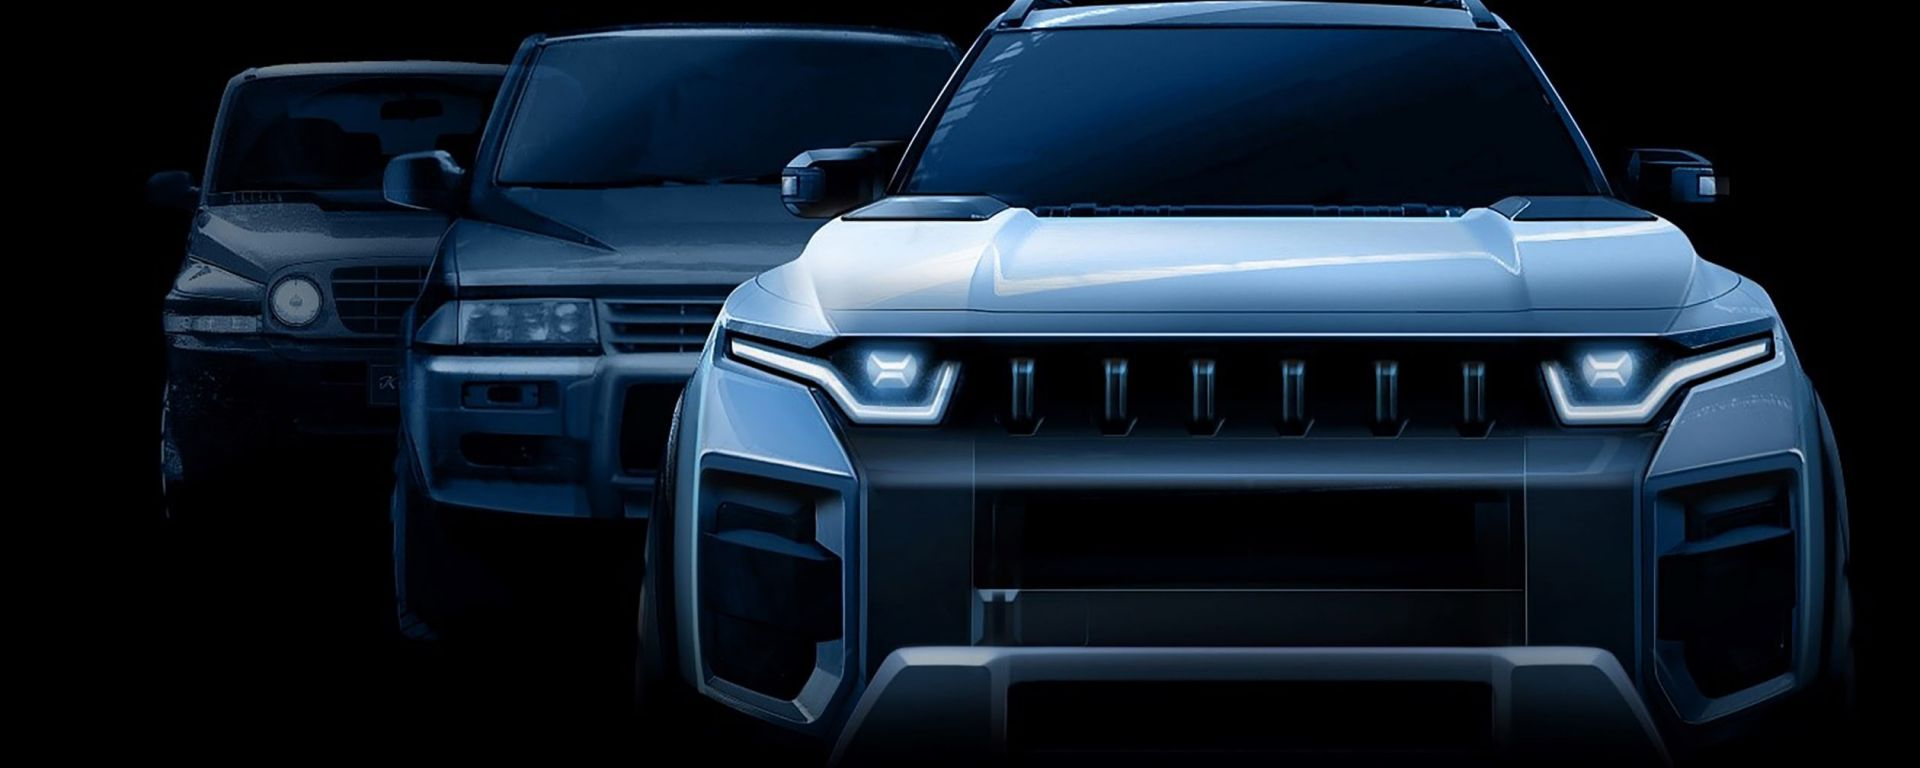 Il teaser del nuovo progetto SsangYong J100